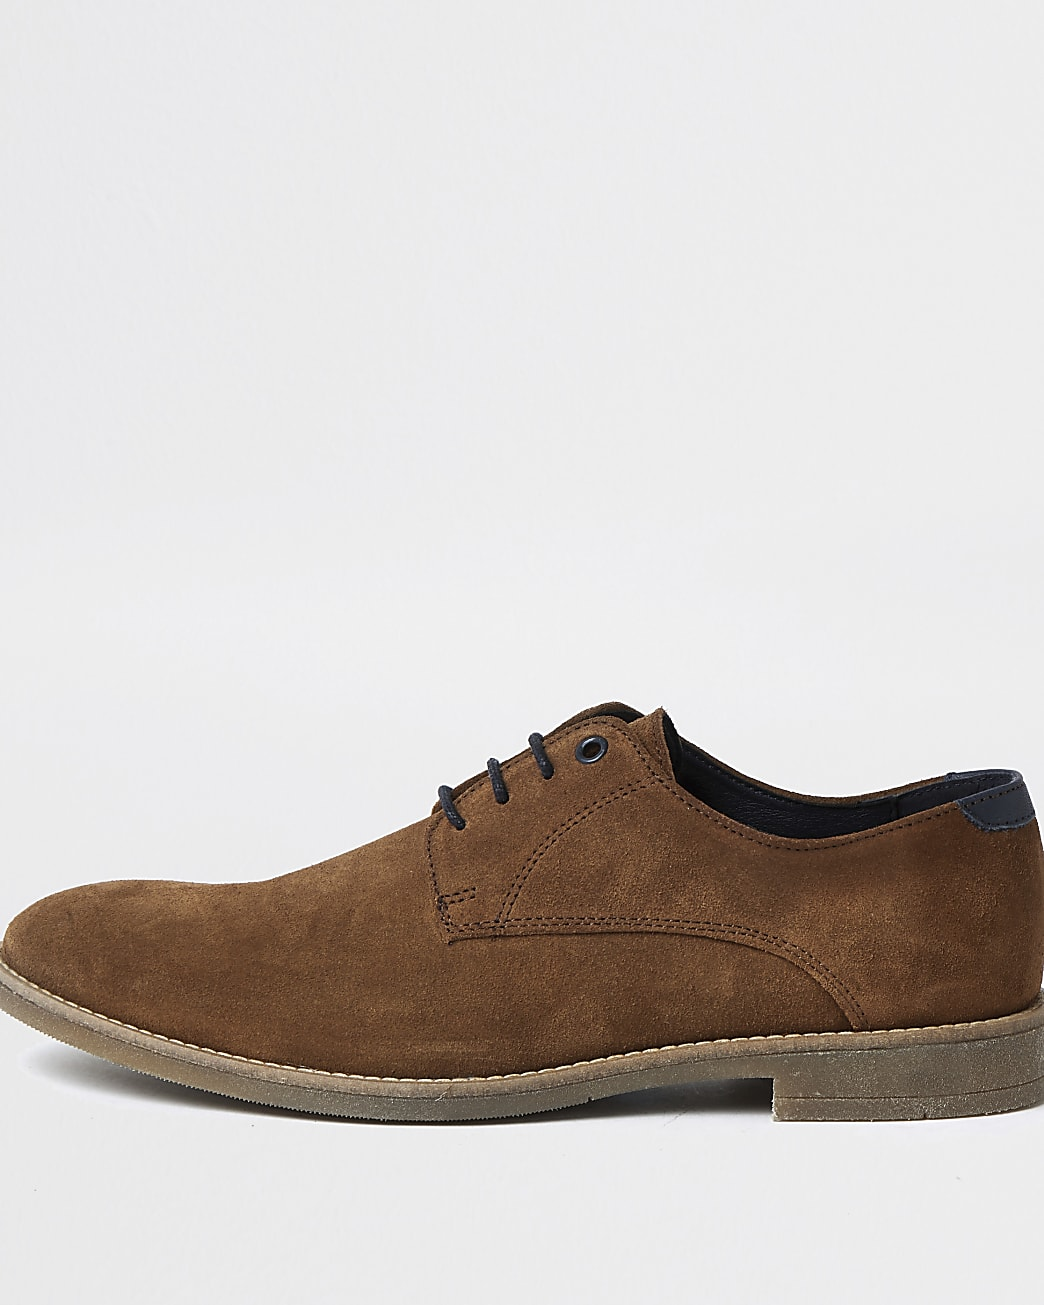 Brown lace up suede derby shoes